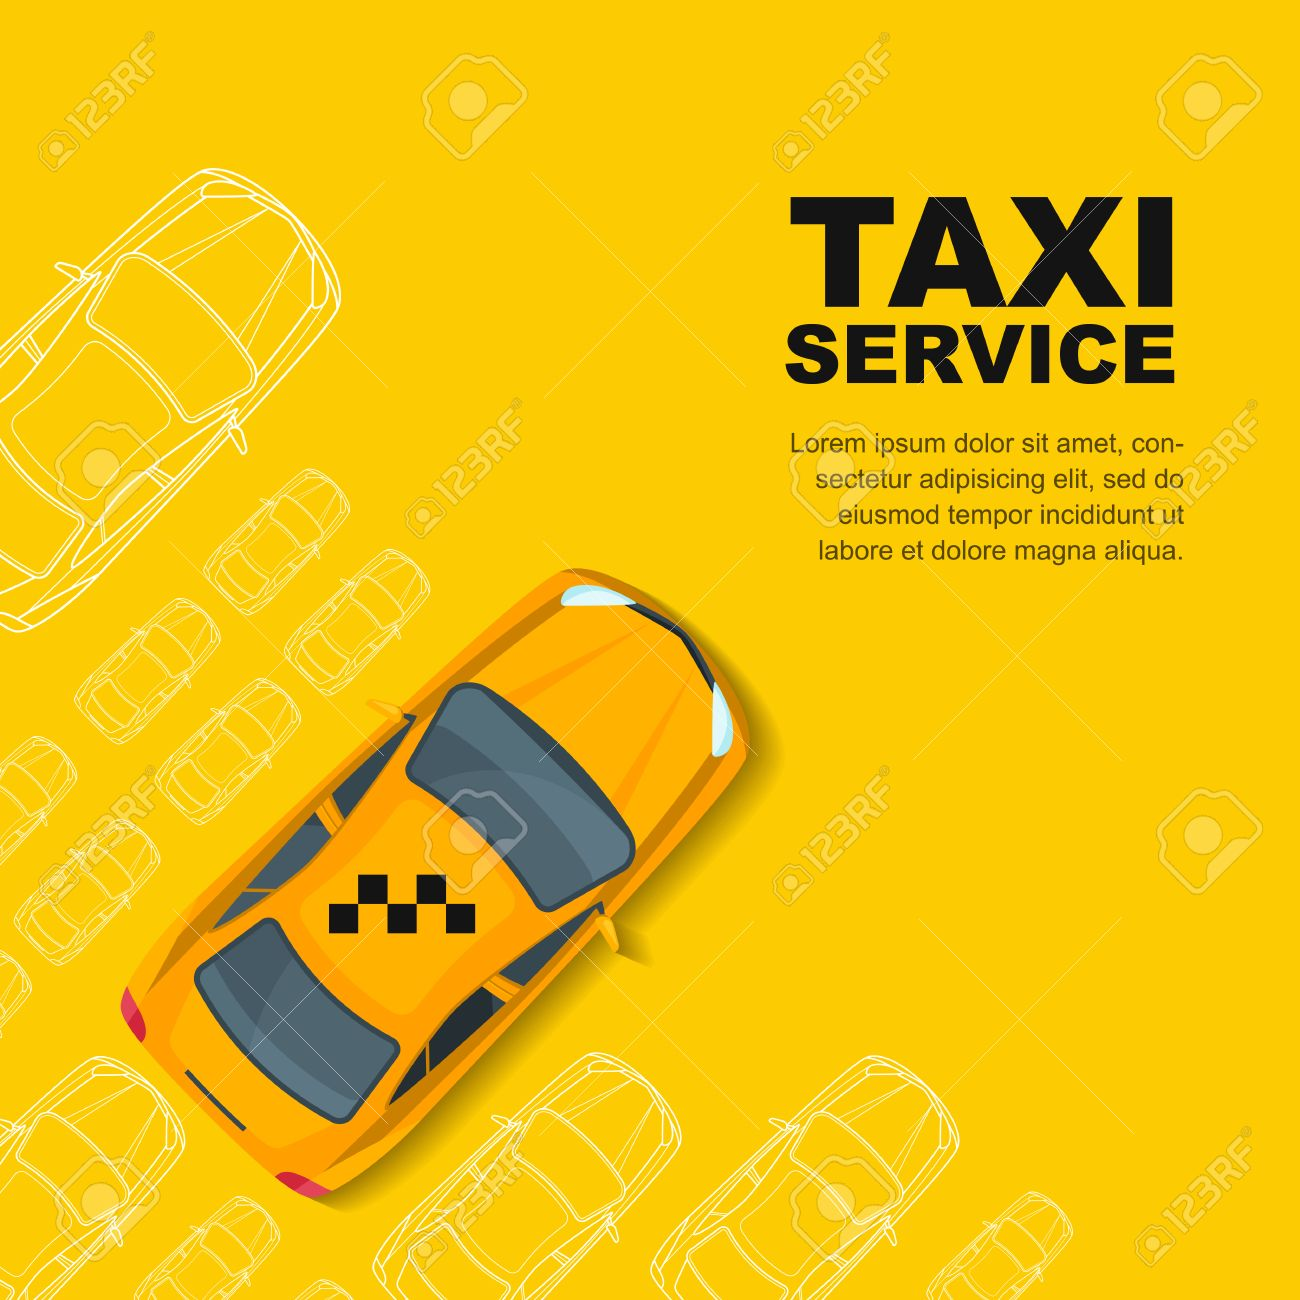 Taxi service concept  yellow , poster or background template